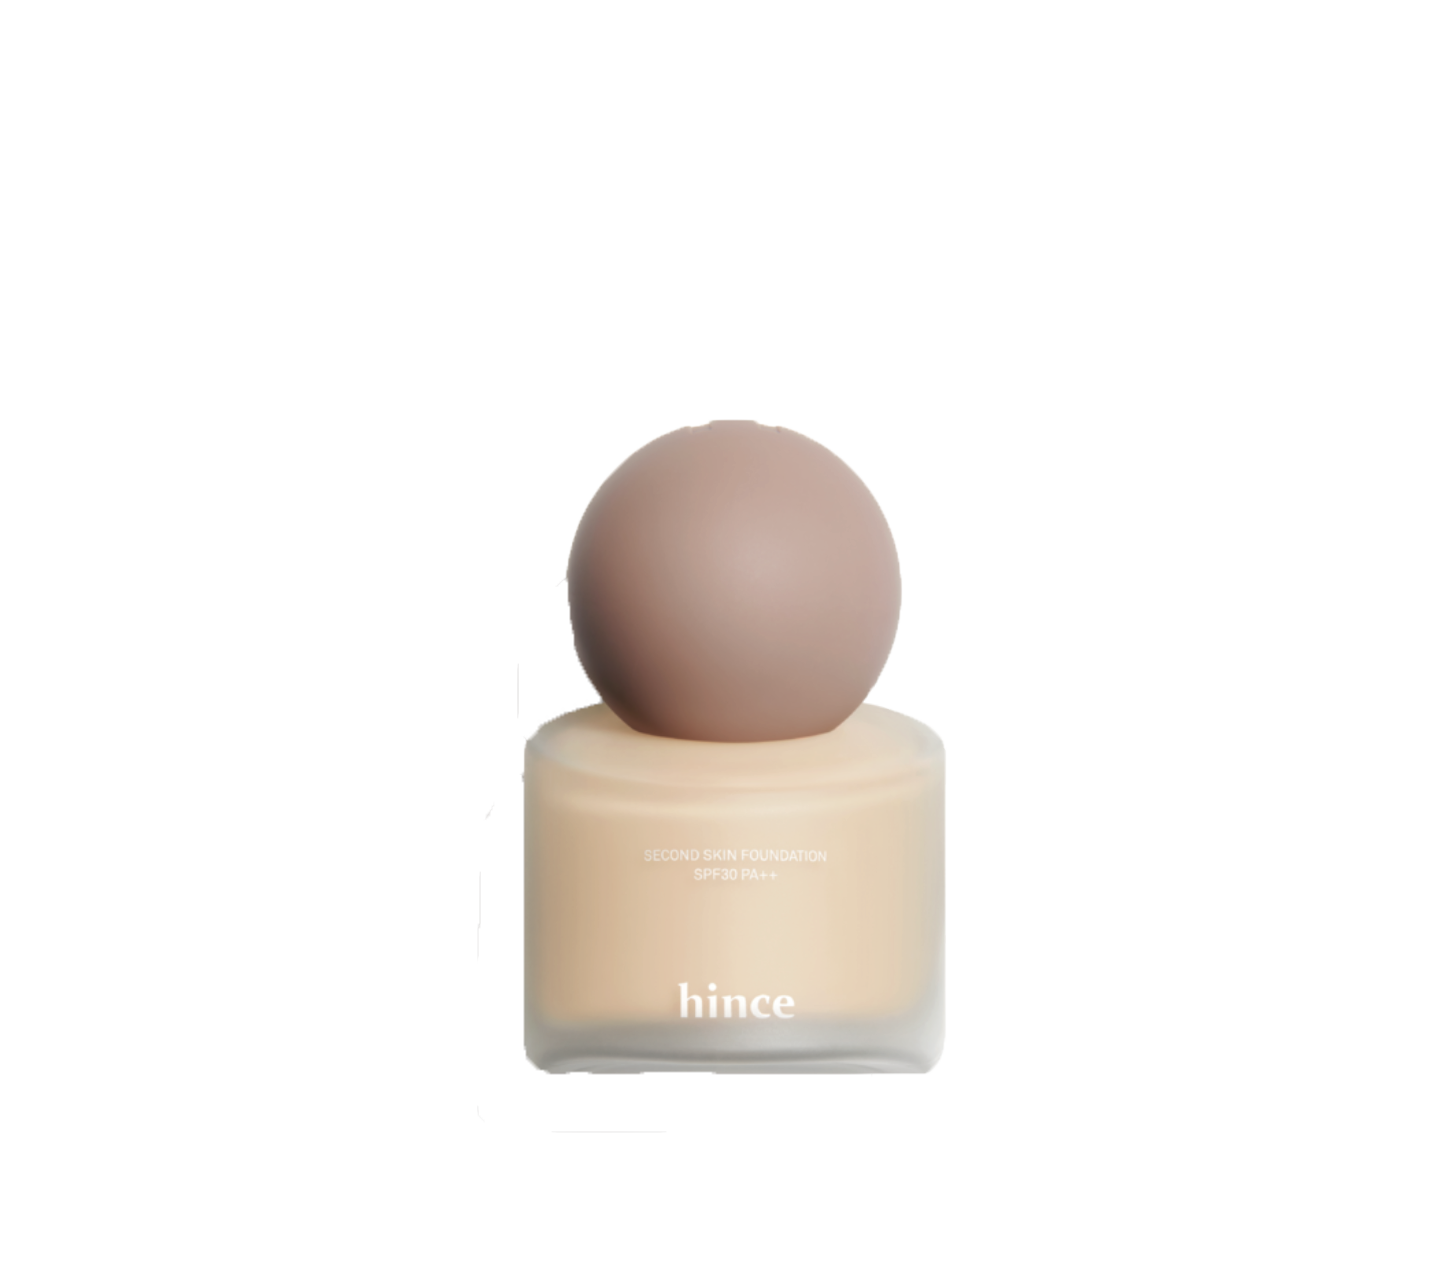 hince-second-skin-foundation